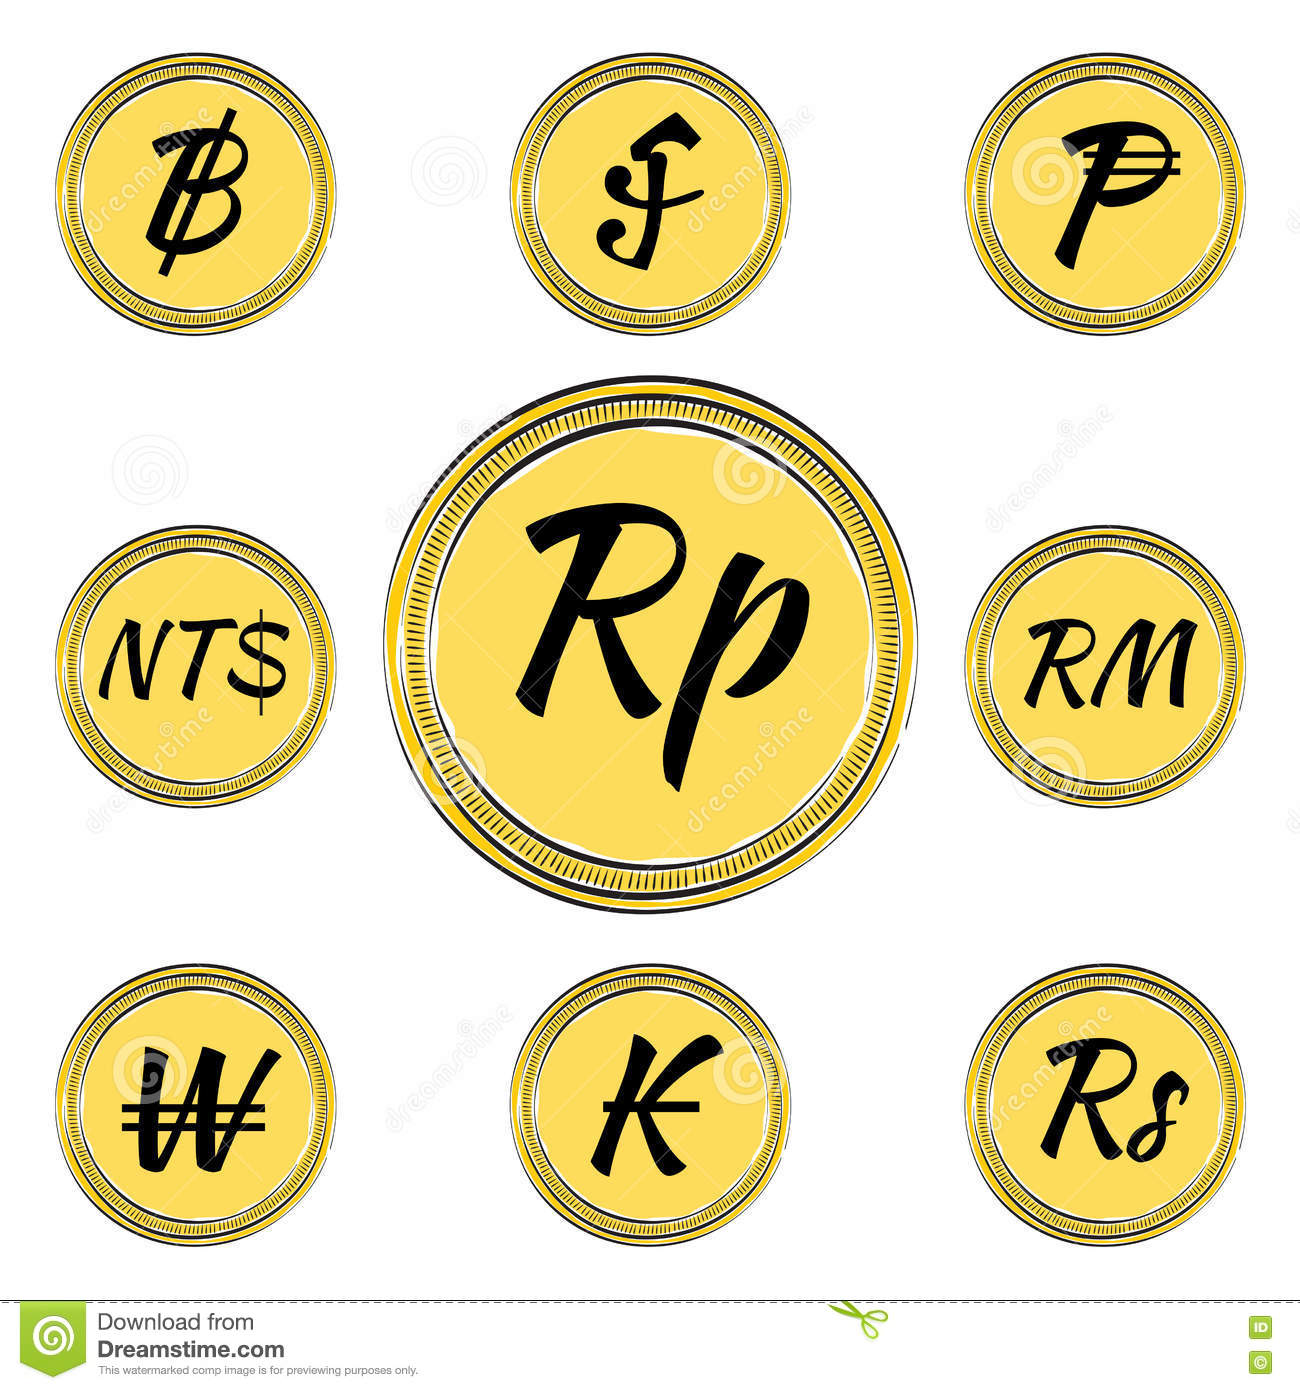 Ringgit stock illustrations 67 ringgit stock illustrations set with asian currency symbols set of coins with symbols of 9 asian currencies buycottarizona Image collections